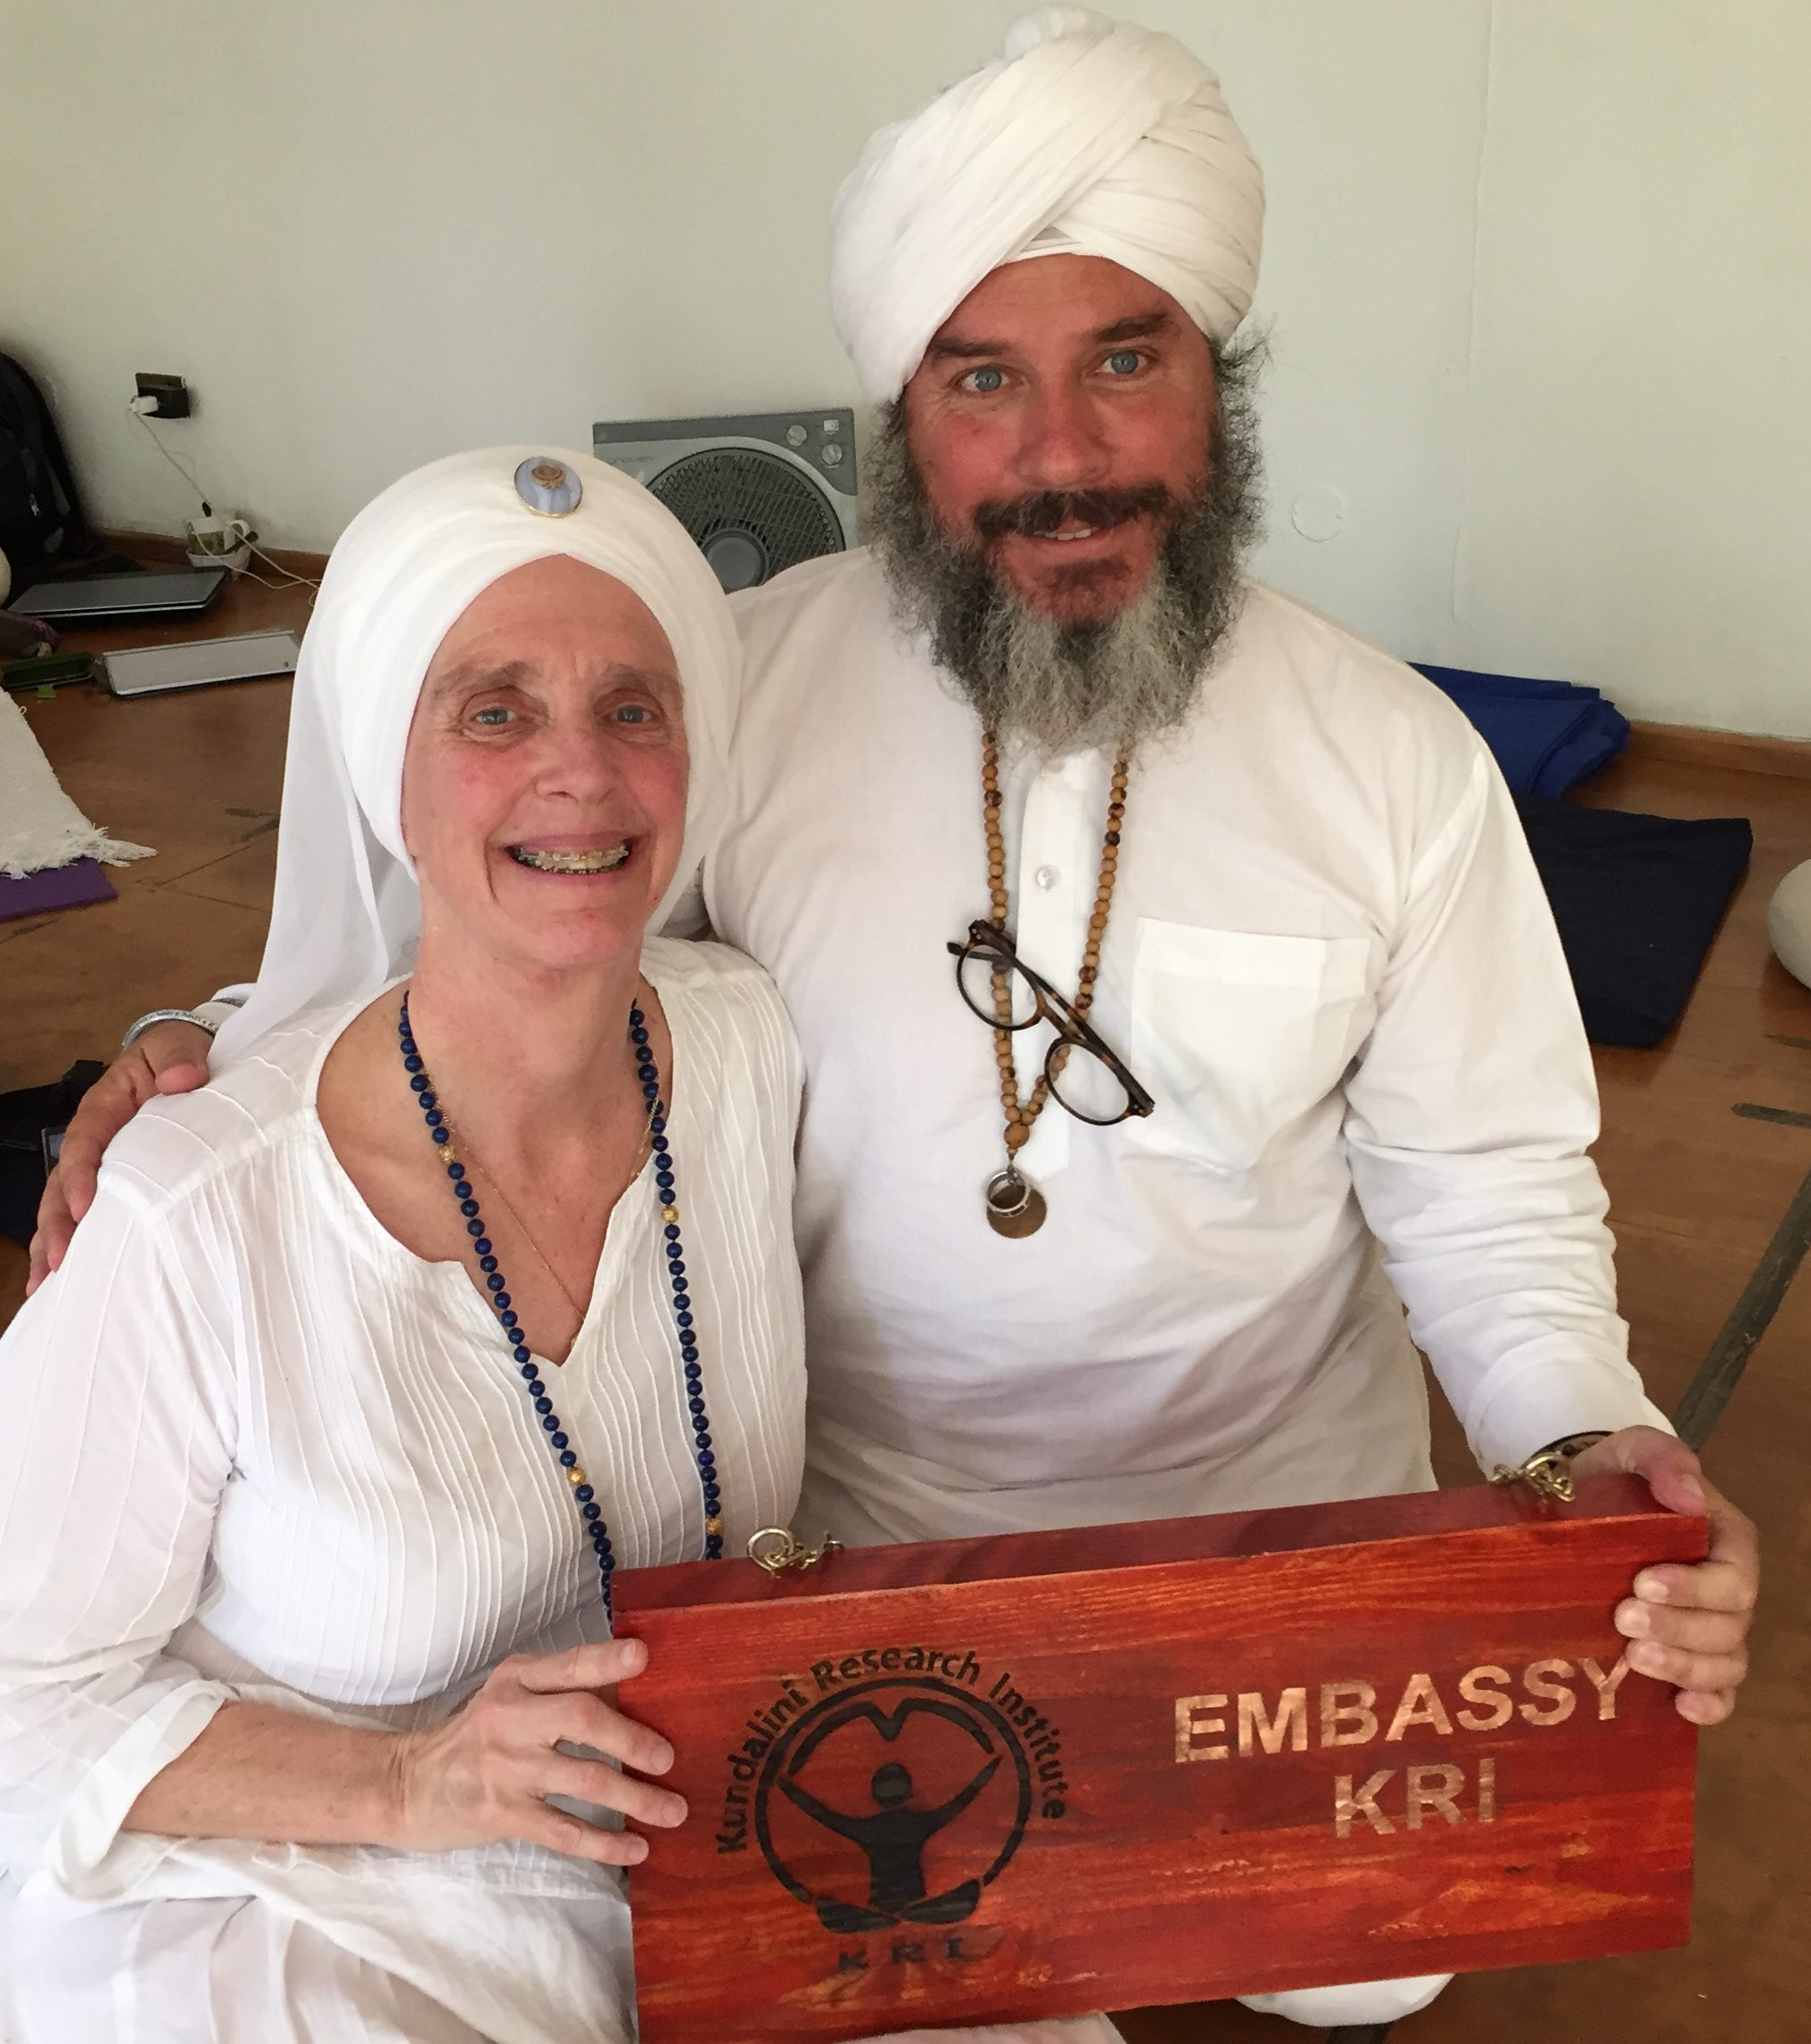 The International Festival of Kundalini Yoga in Chile